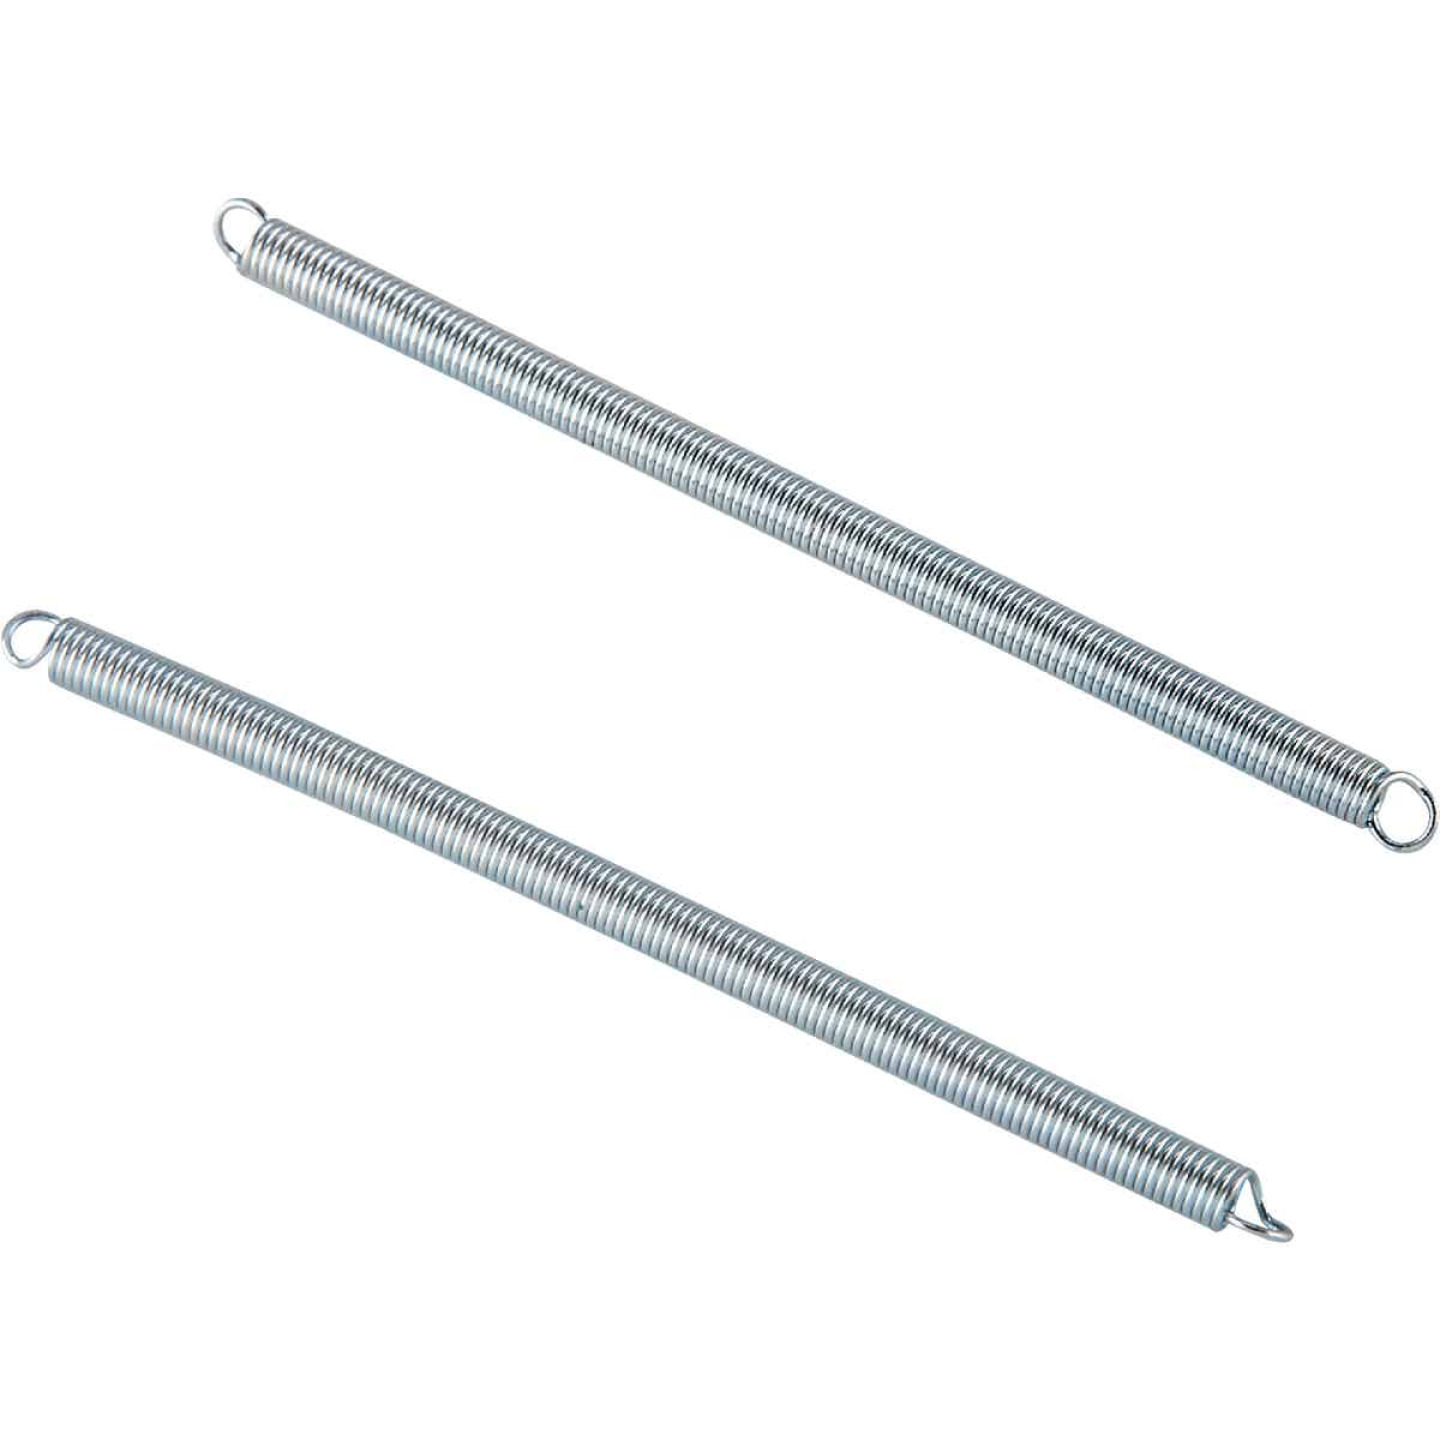 Century Spring 1-1/2 In. x 5/32 In. Extension Spring (2 Count) Image 1